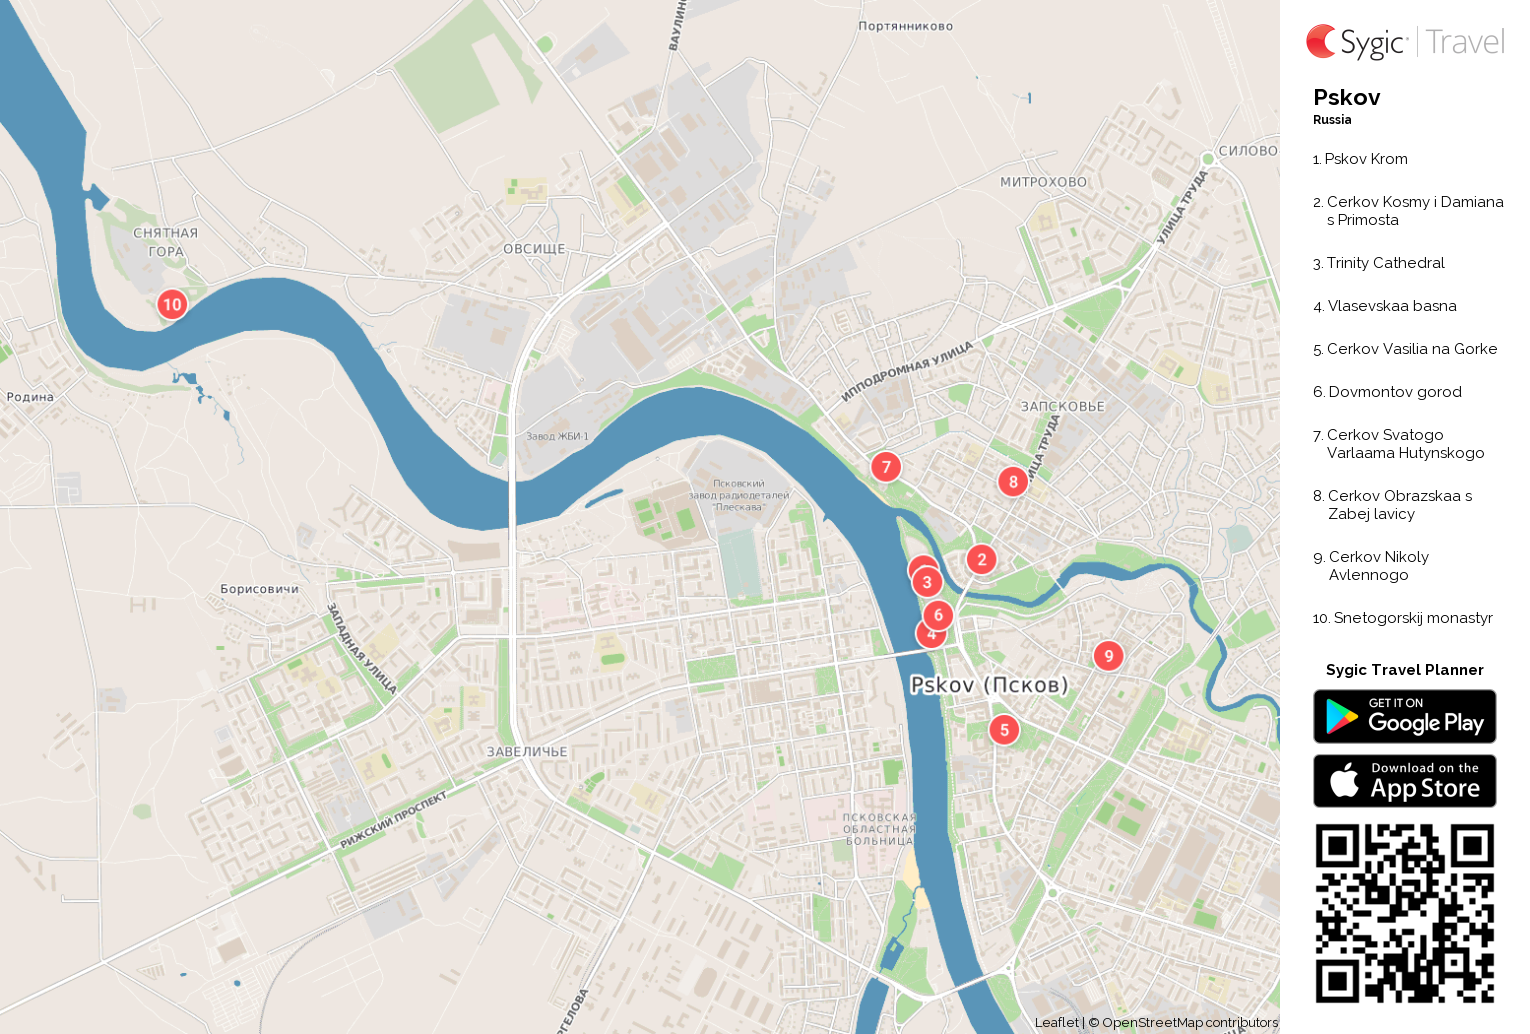 Pskov Printable Tourist Map Sygic Travel